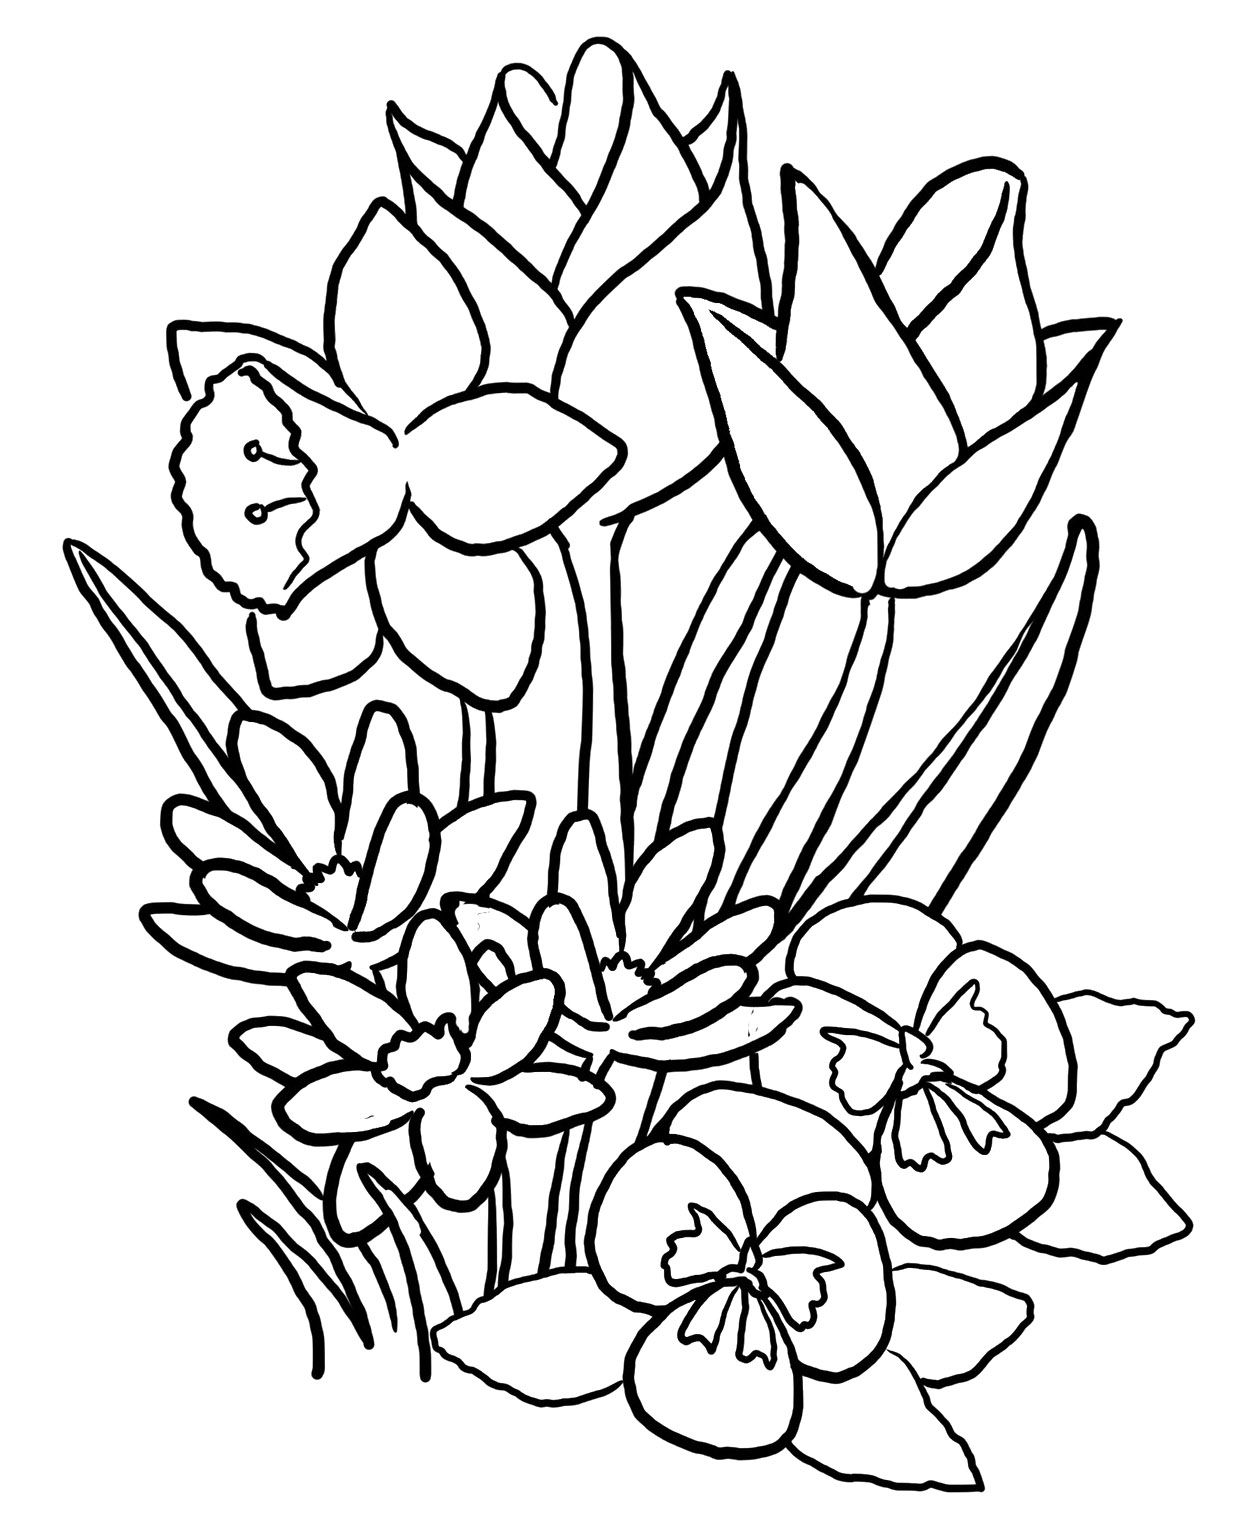 spring coloring pages printable spring coloring pages free spring coloring pages online spring coloring pages for adults teenagers kids sheets